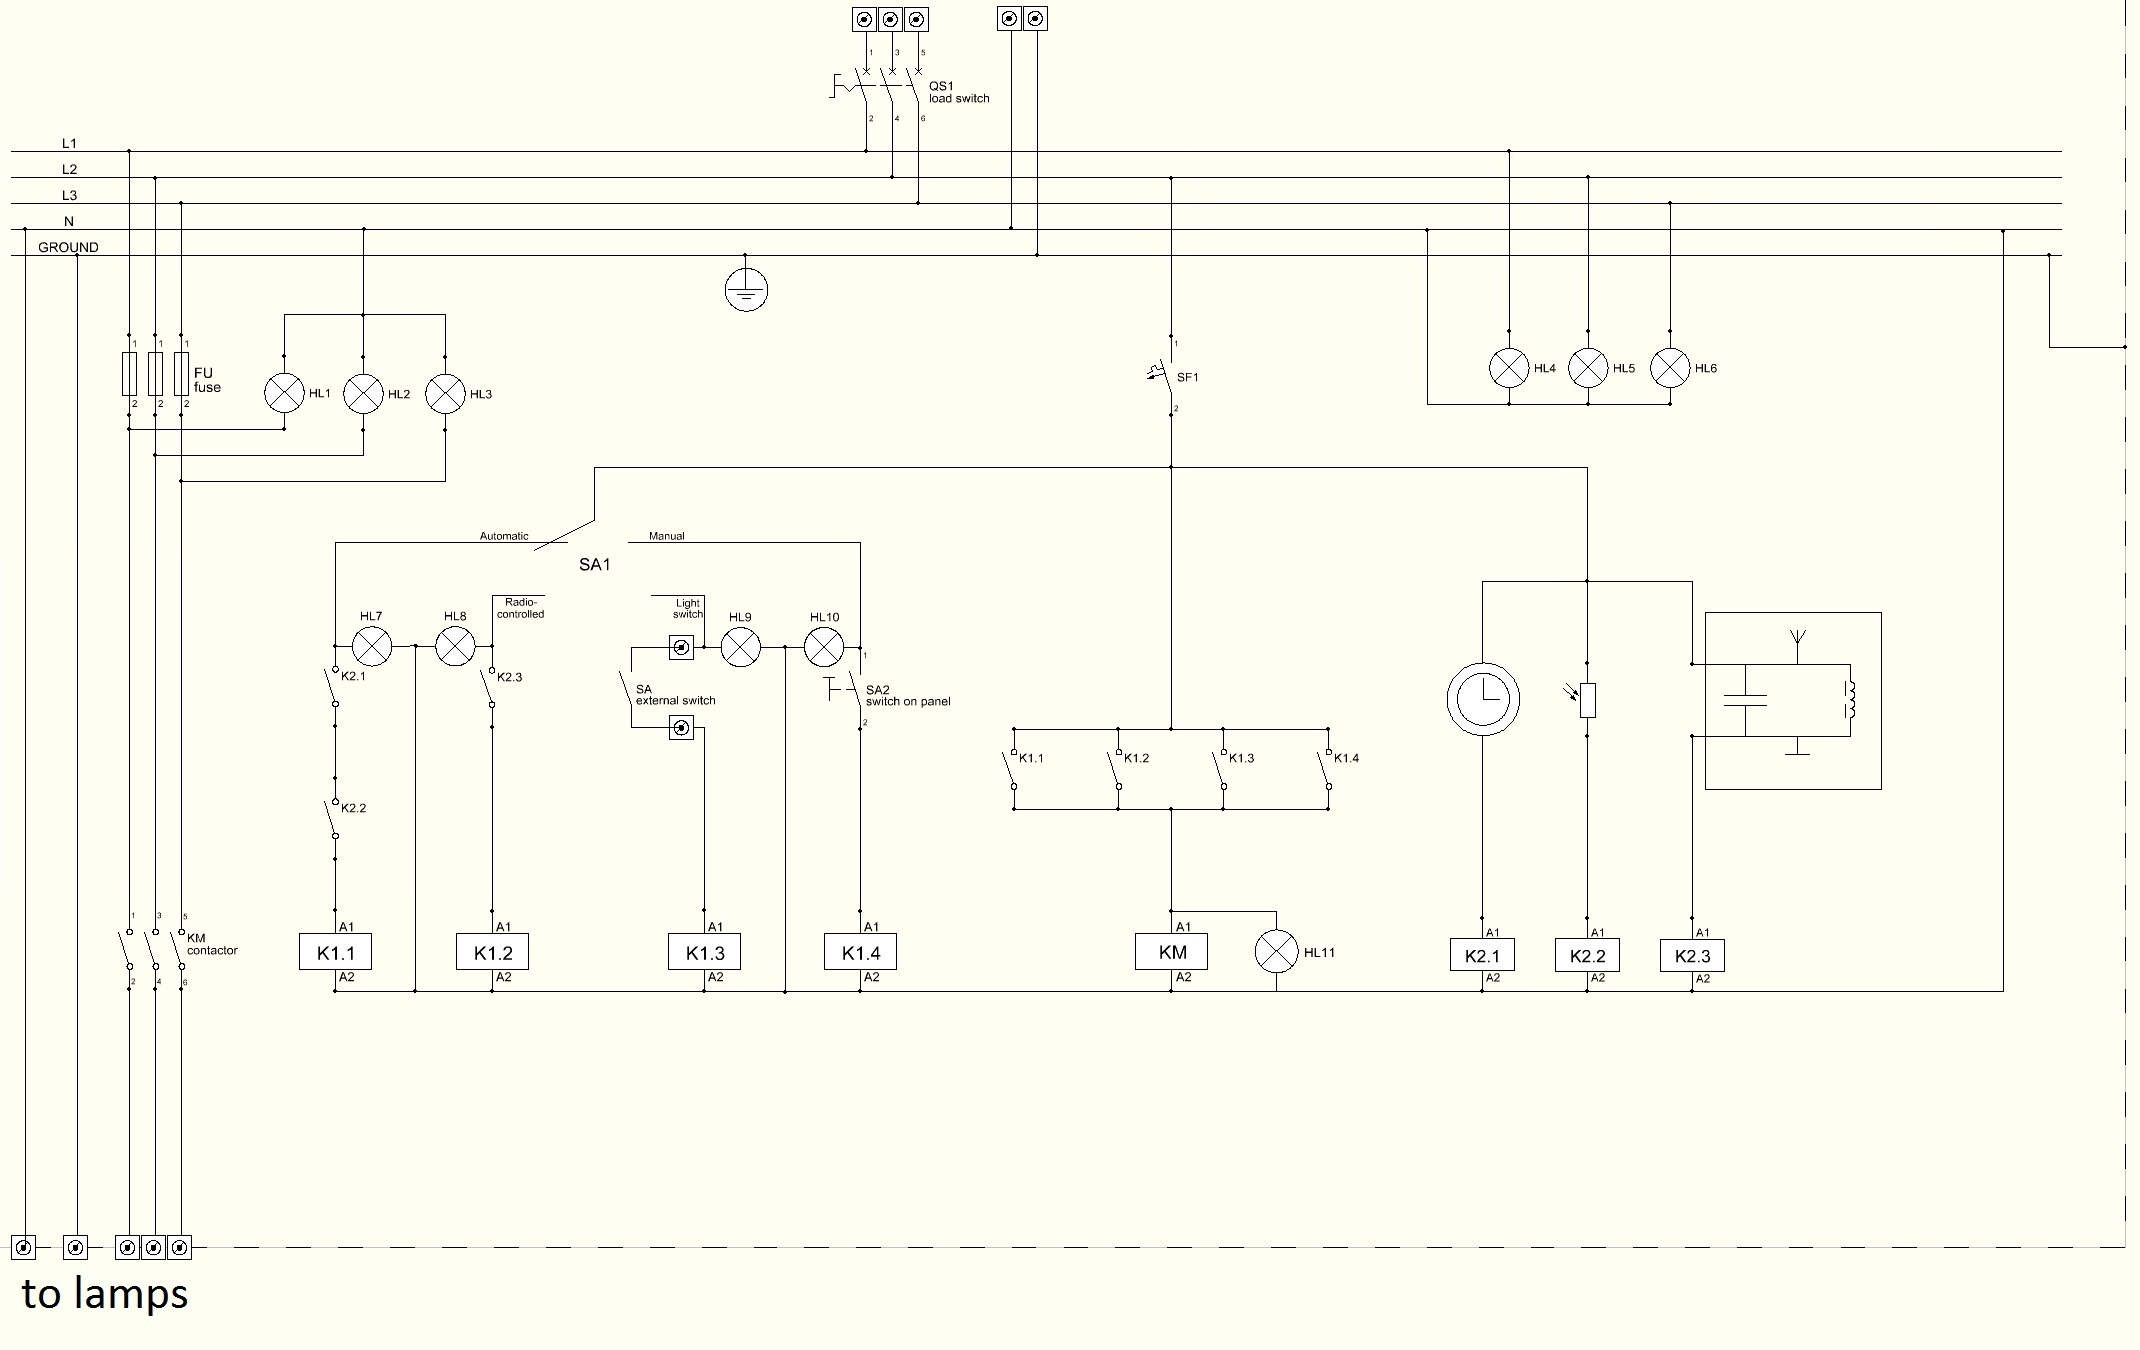 Control Wiring Diagram - Wiring Diagram Online on industrial motor control, industrial electrical wiring diagrams, industrial electrical panel wiring,